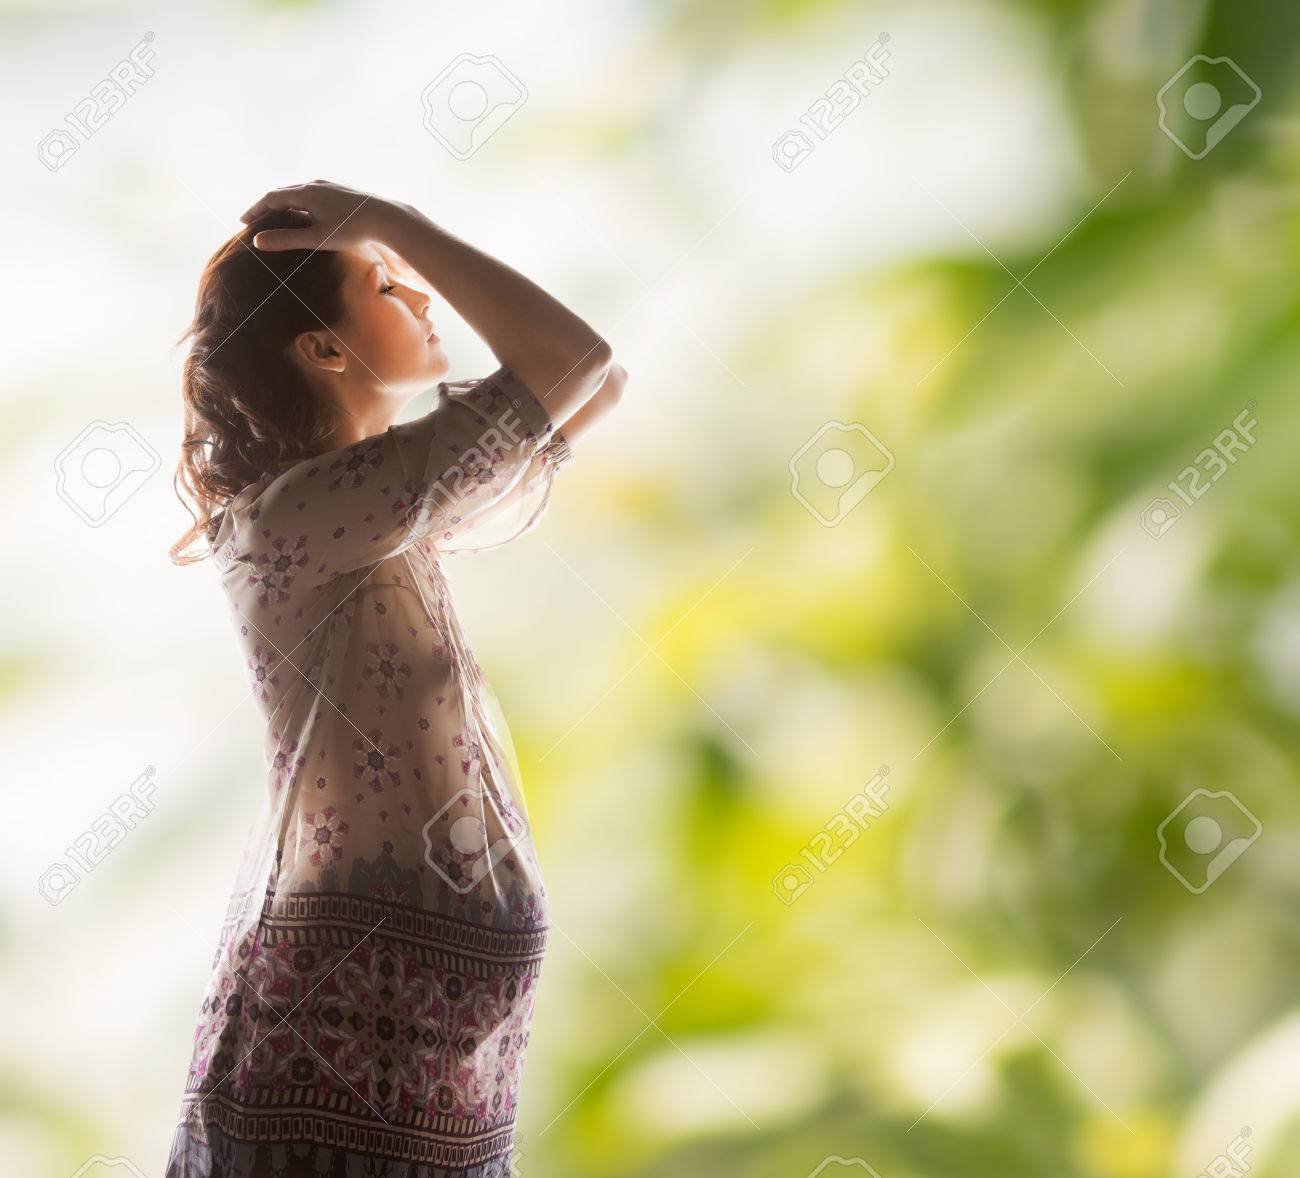 family, motherhood and pregnancy concept - silhouette backlight picture of pregnant beautiful woman Stock Photo - 24221462